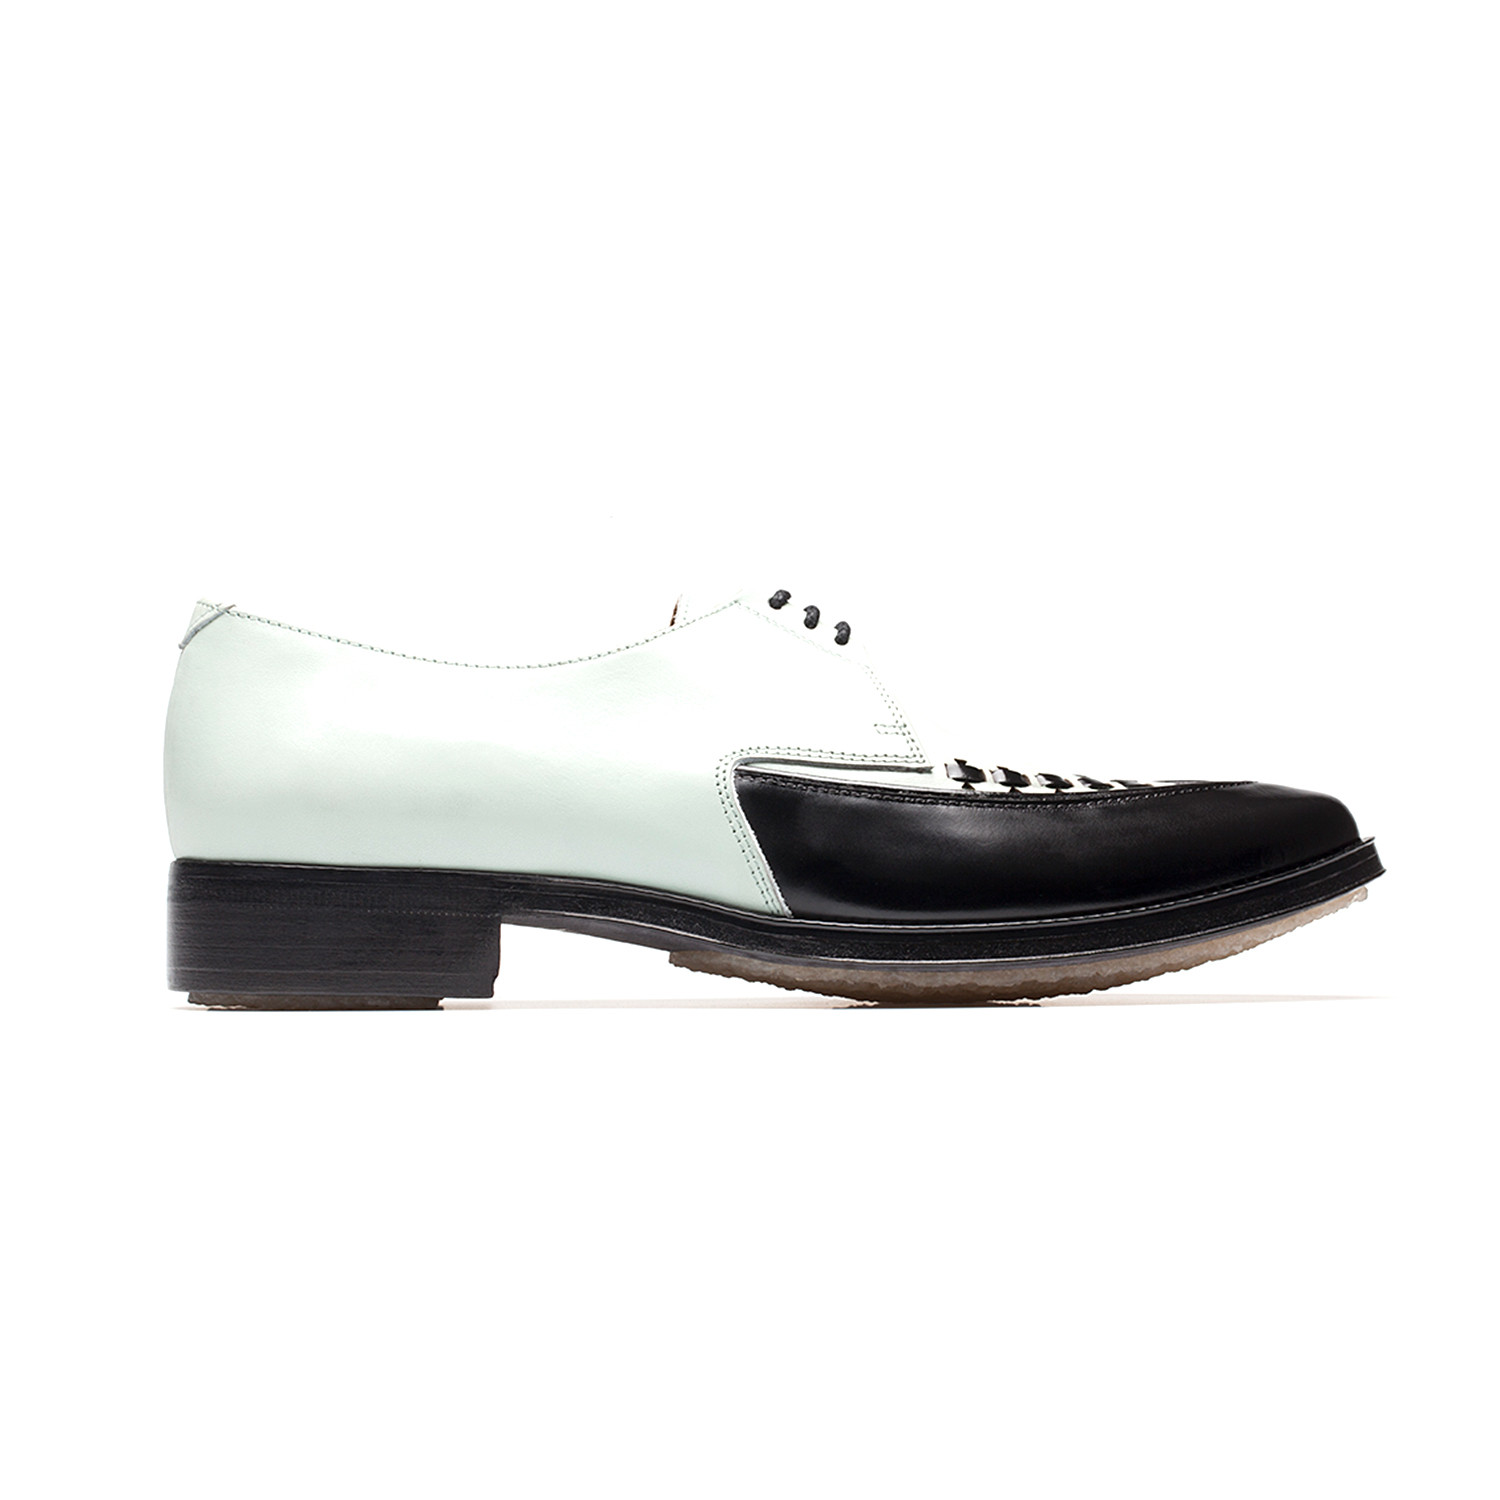 low price fee shipping for sale Adiev Leather Pointed-Toe Oxfords quality original cheap sale top quality cheap sale Cheapest sale best sale ld2ETZEg